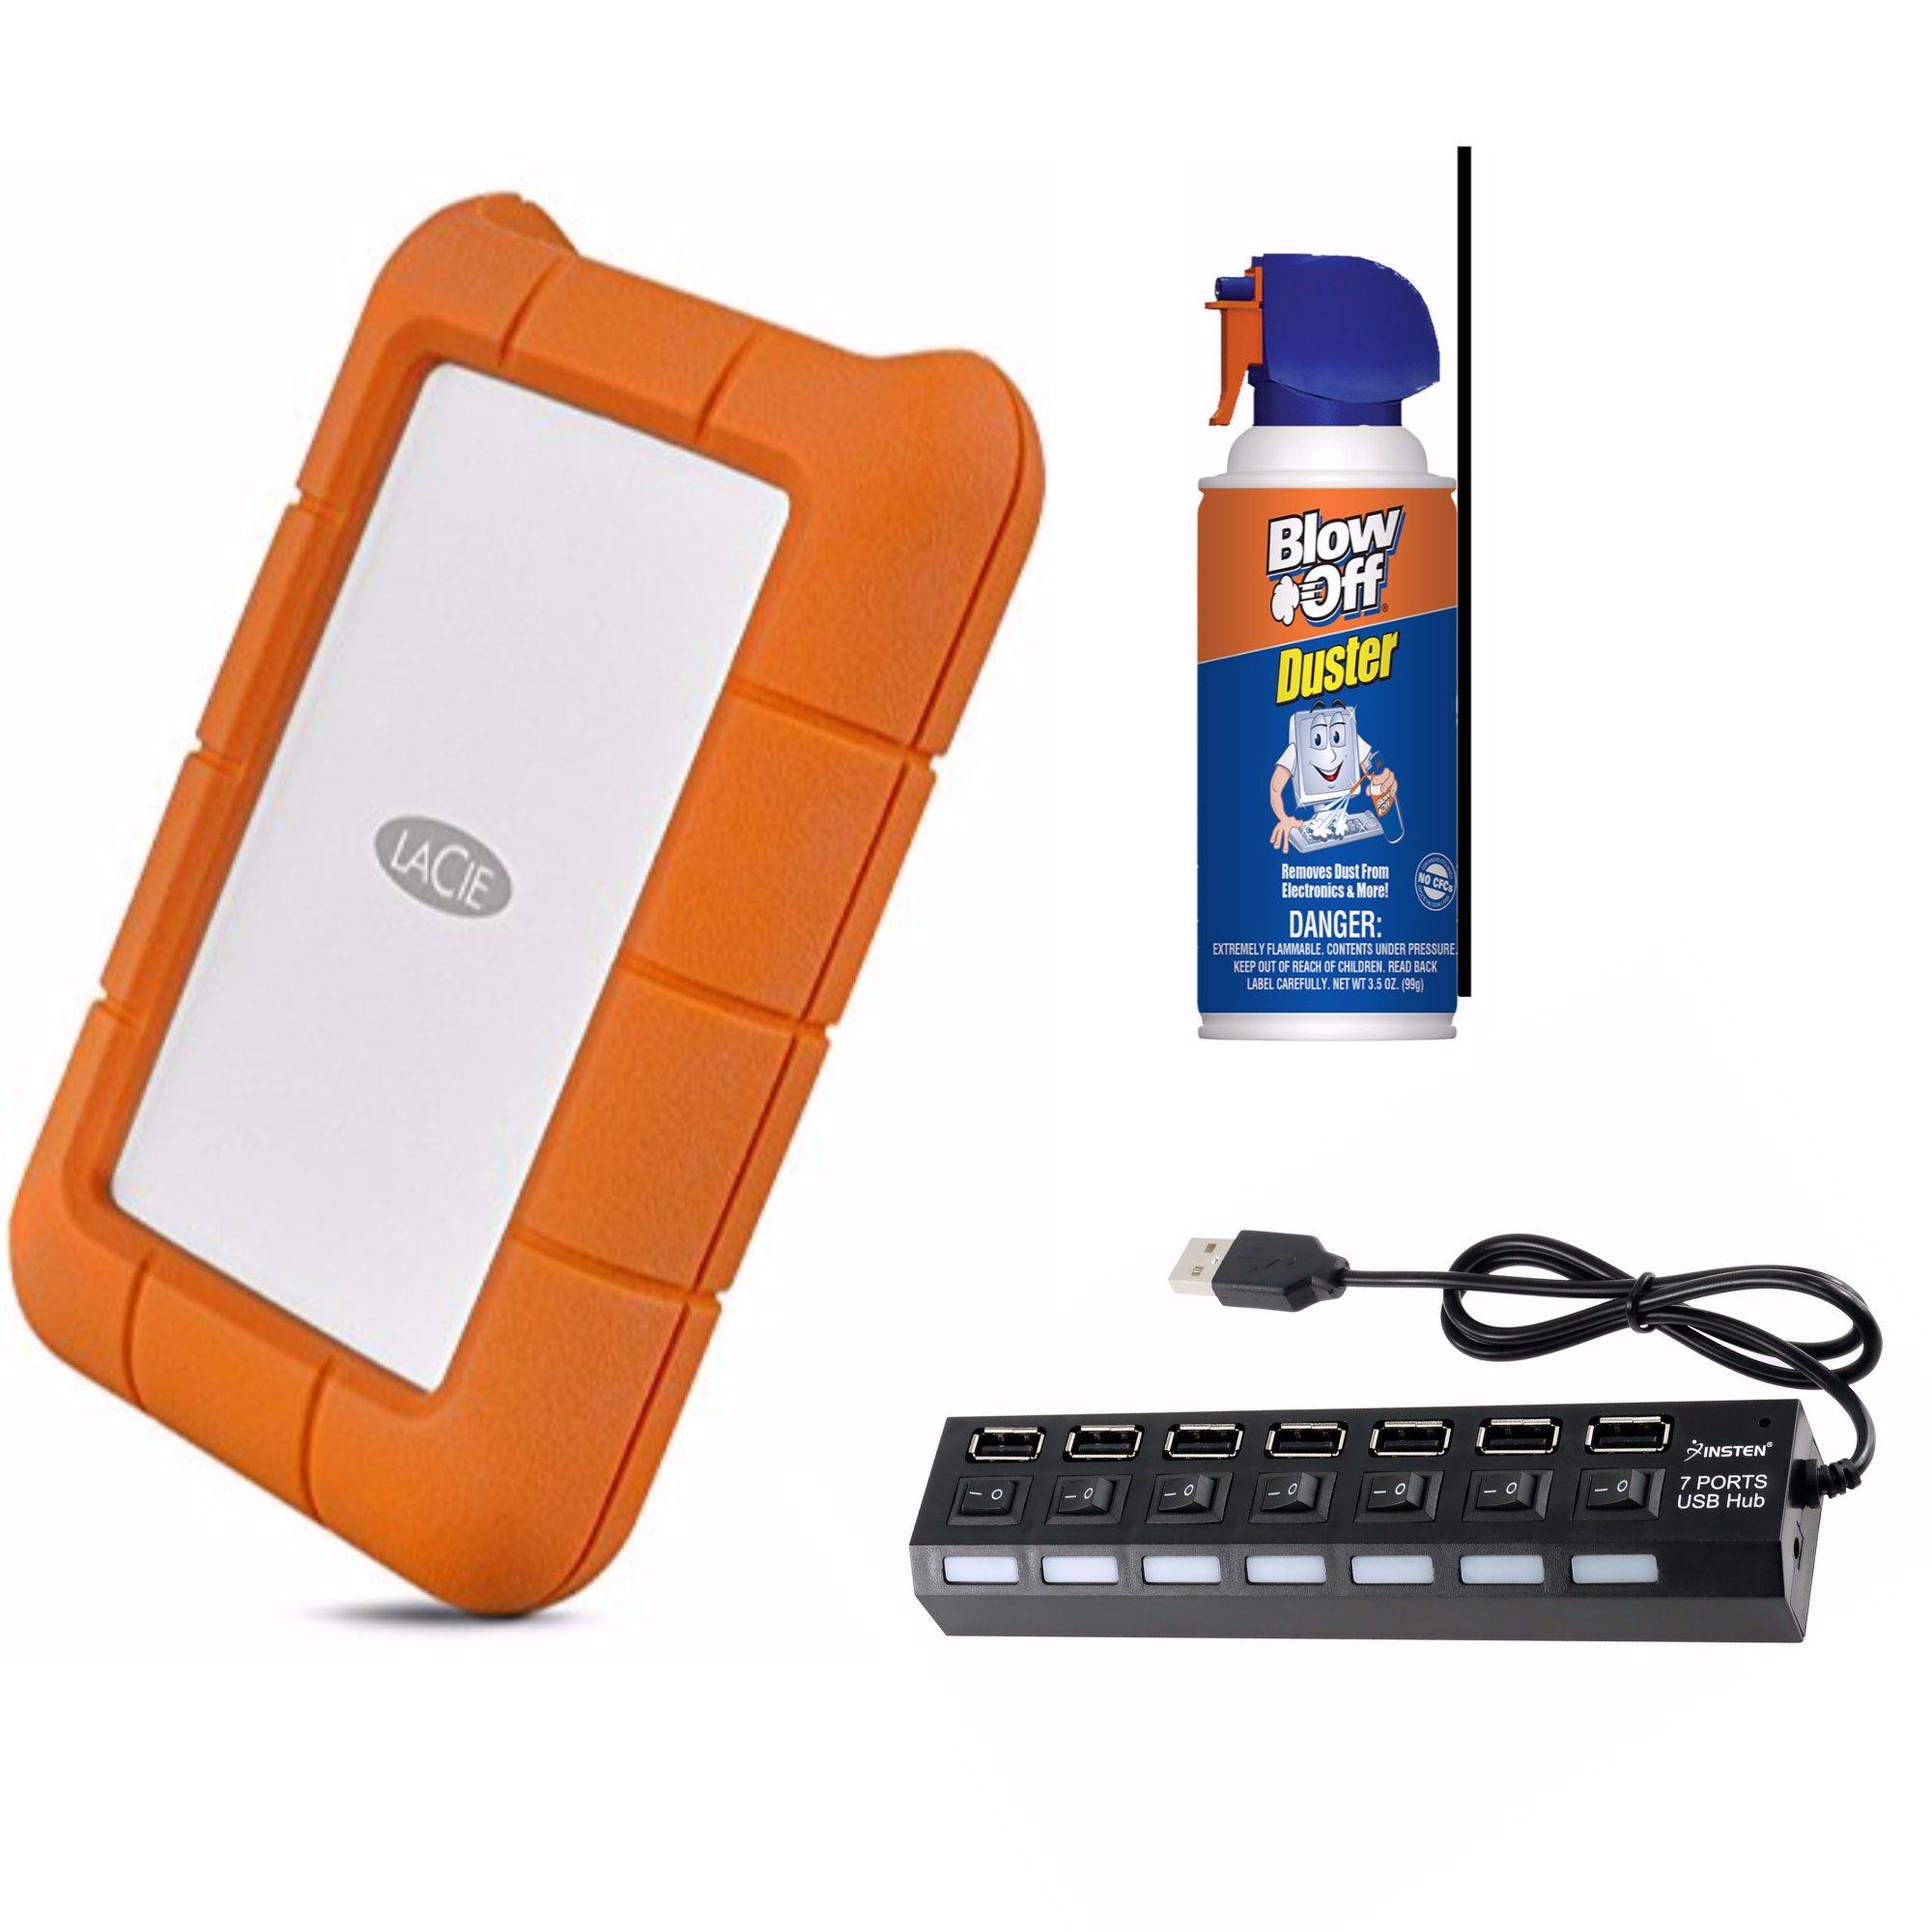 LaCie Rugged STFR4000800 4 TB 2.5'' External Hard Drive bundle by LaCie